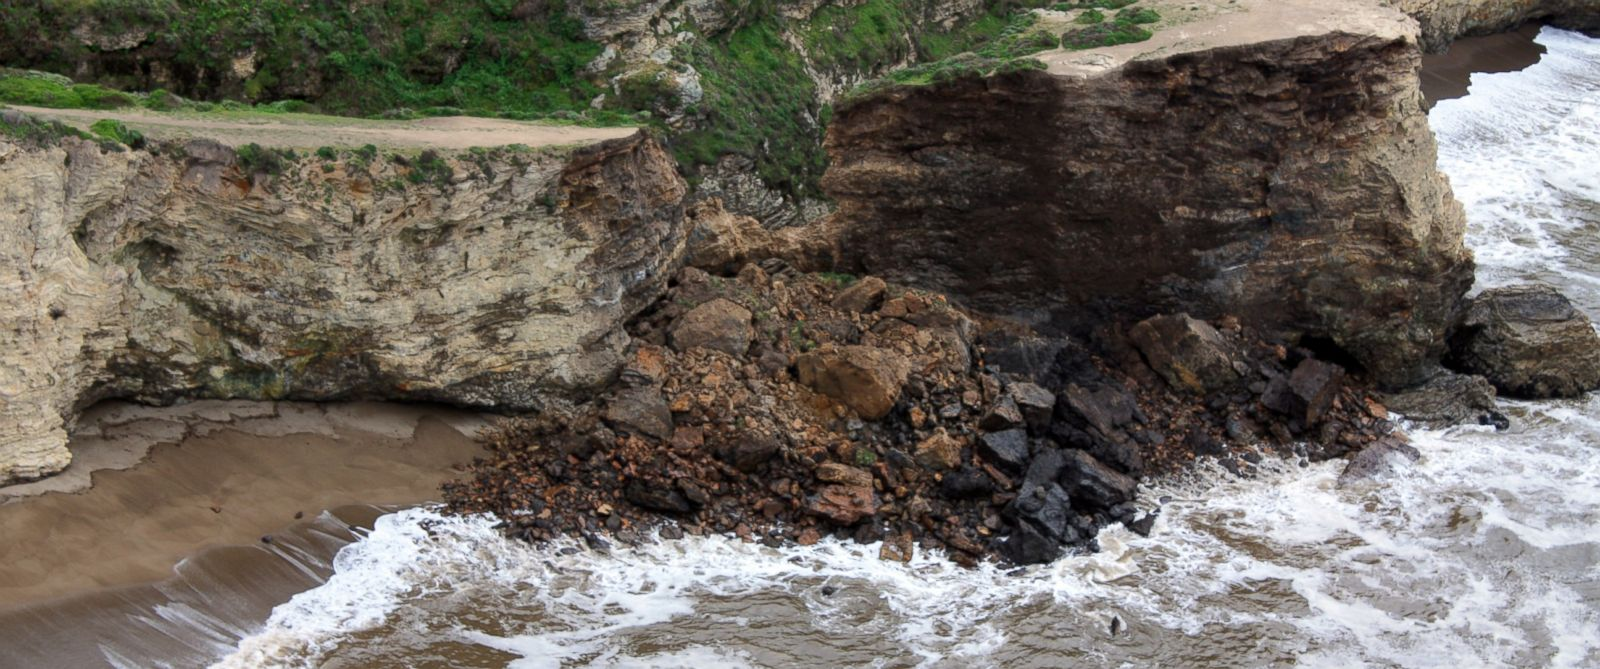 PHOTO: This photo provided by Point Reyes National Seashore shows a rockslide at Arch Rock within Point Reyes National Seashore on the Northern California coast north of San Francisco Sunday, March 22, 2015.